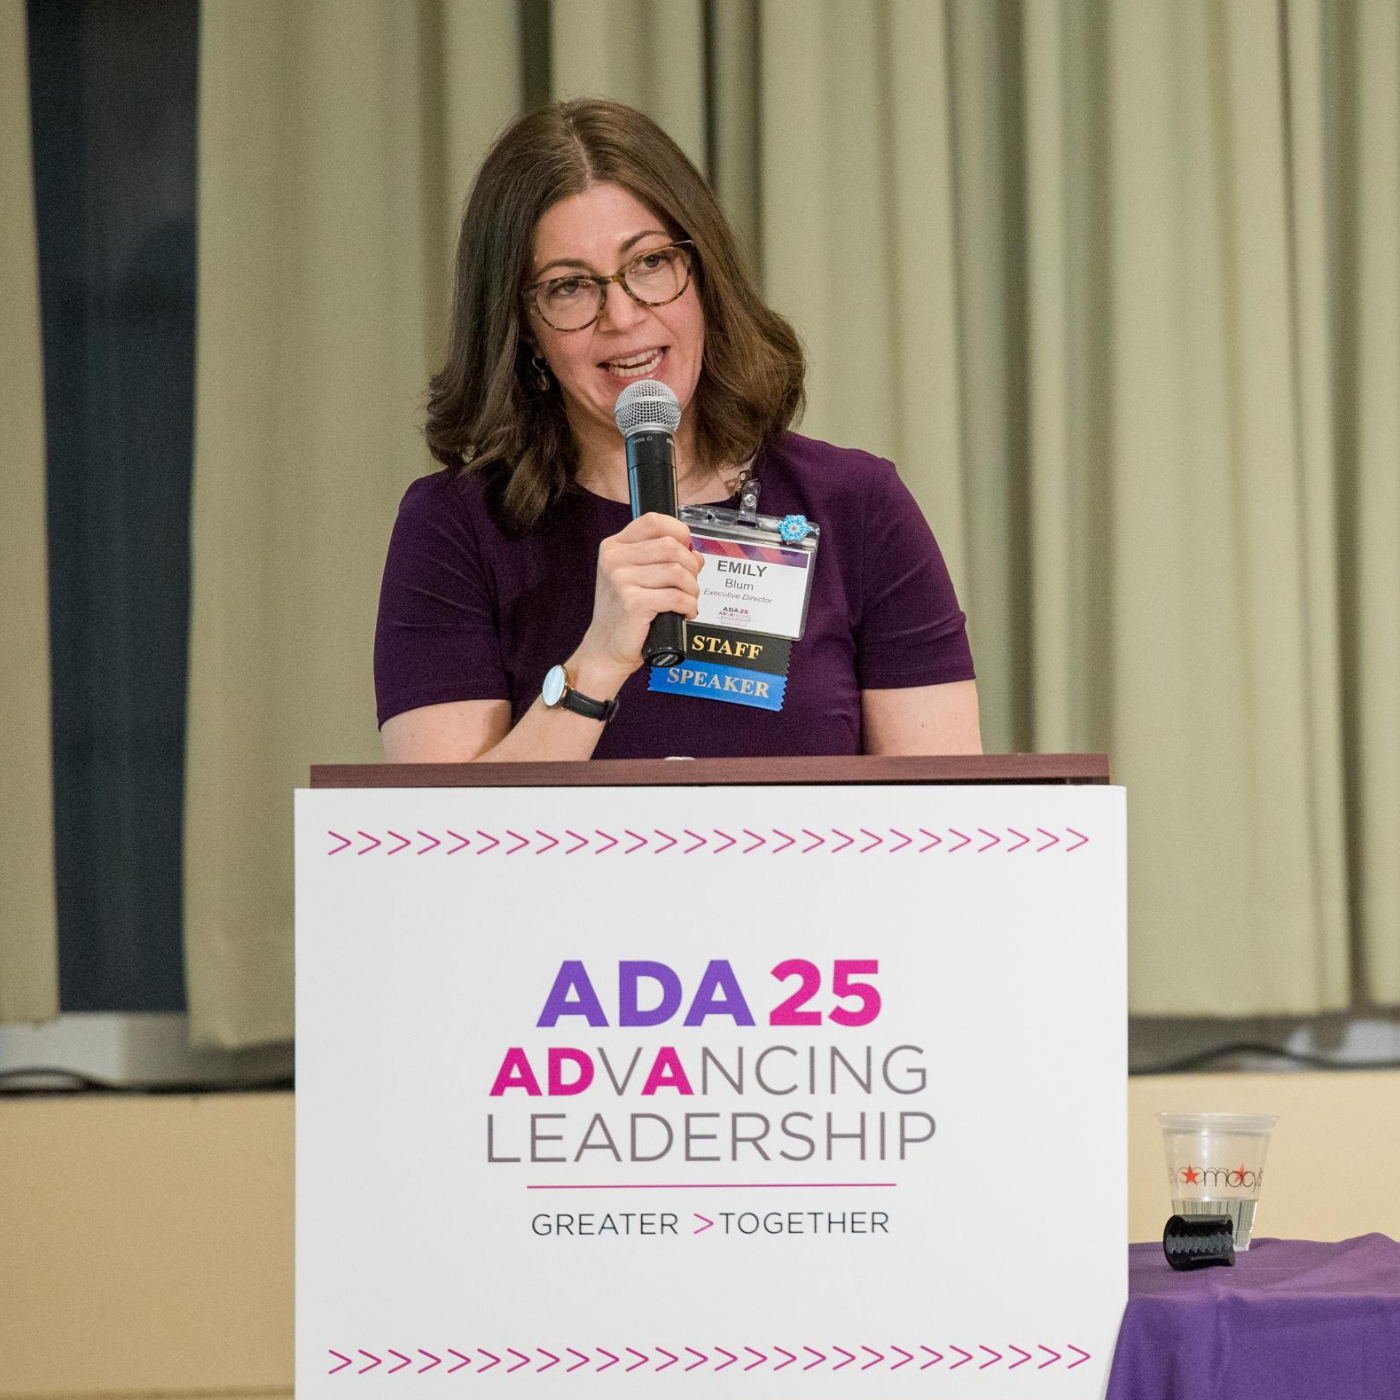 Emily speaks into a mic at a podum with the ADA 25 logo. Brown, medium length hair. Short-sleeved maroon dress, glasses.